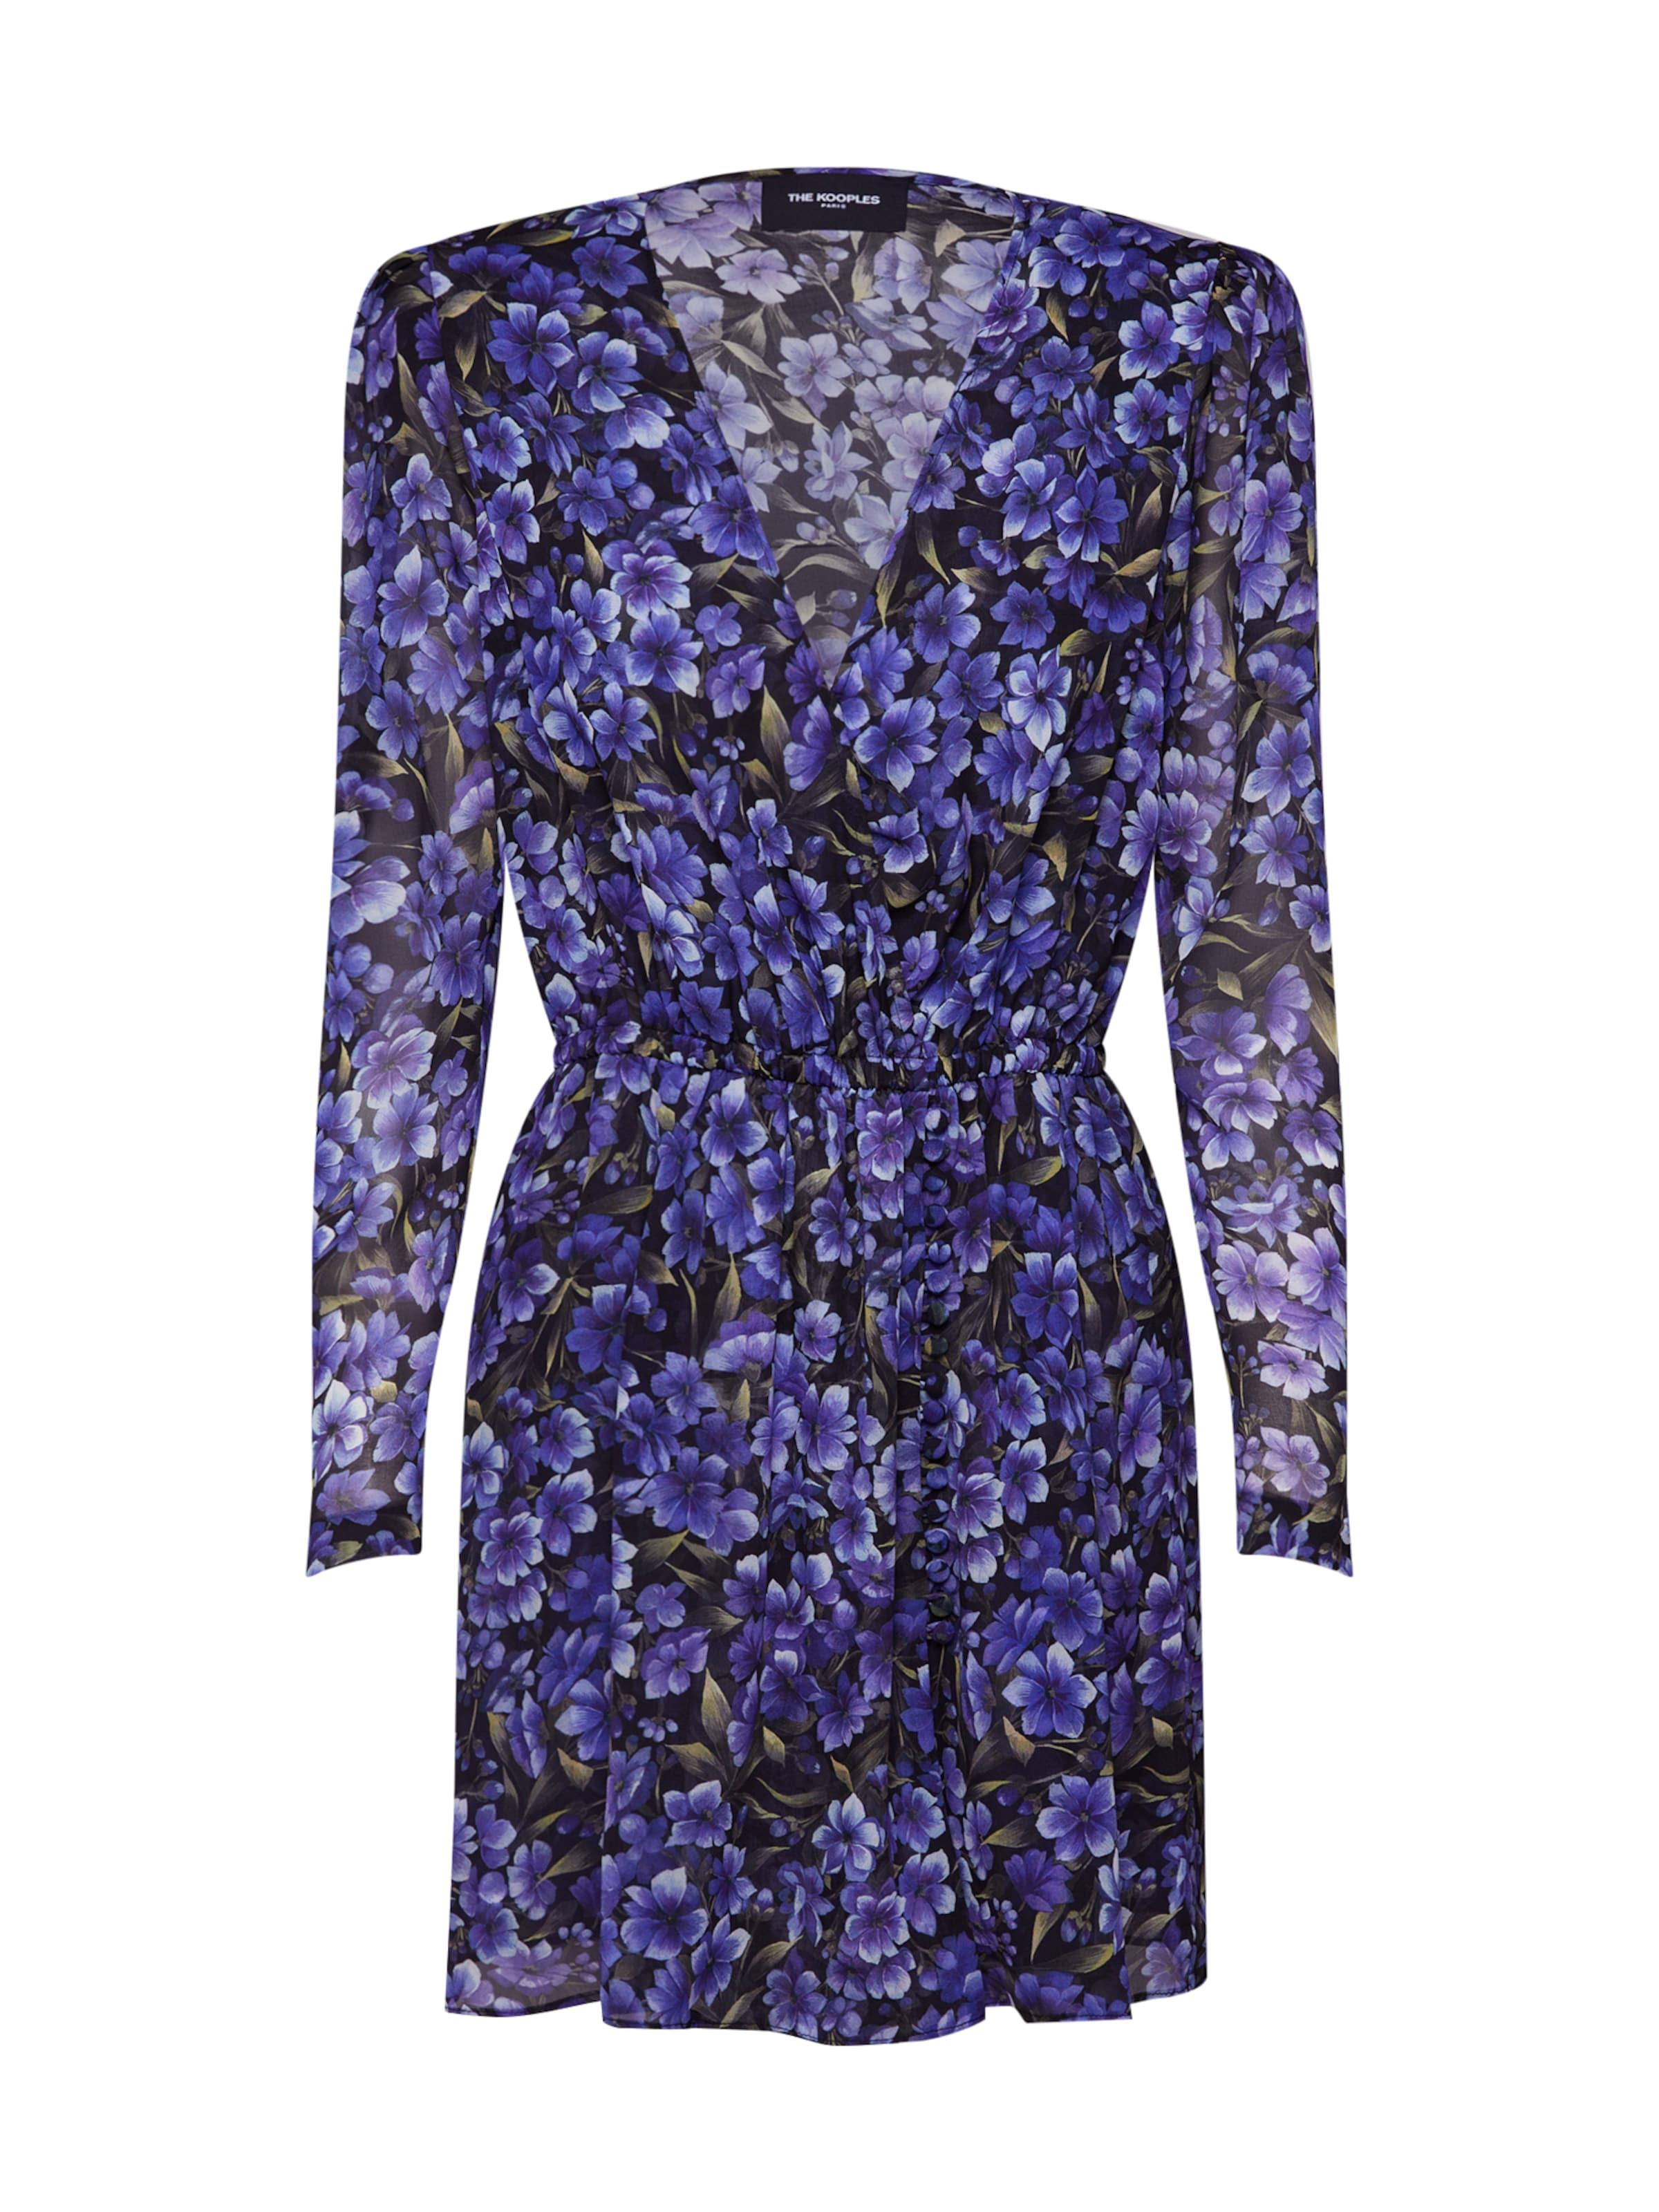 Robe 'frob18026k' FoncéNoir Violet The En Kooples q5RL34Aj